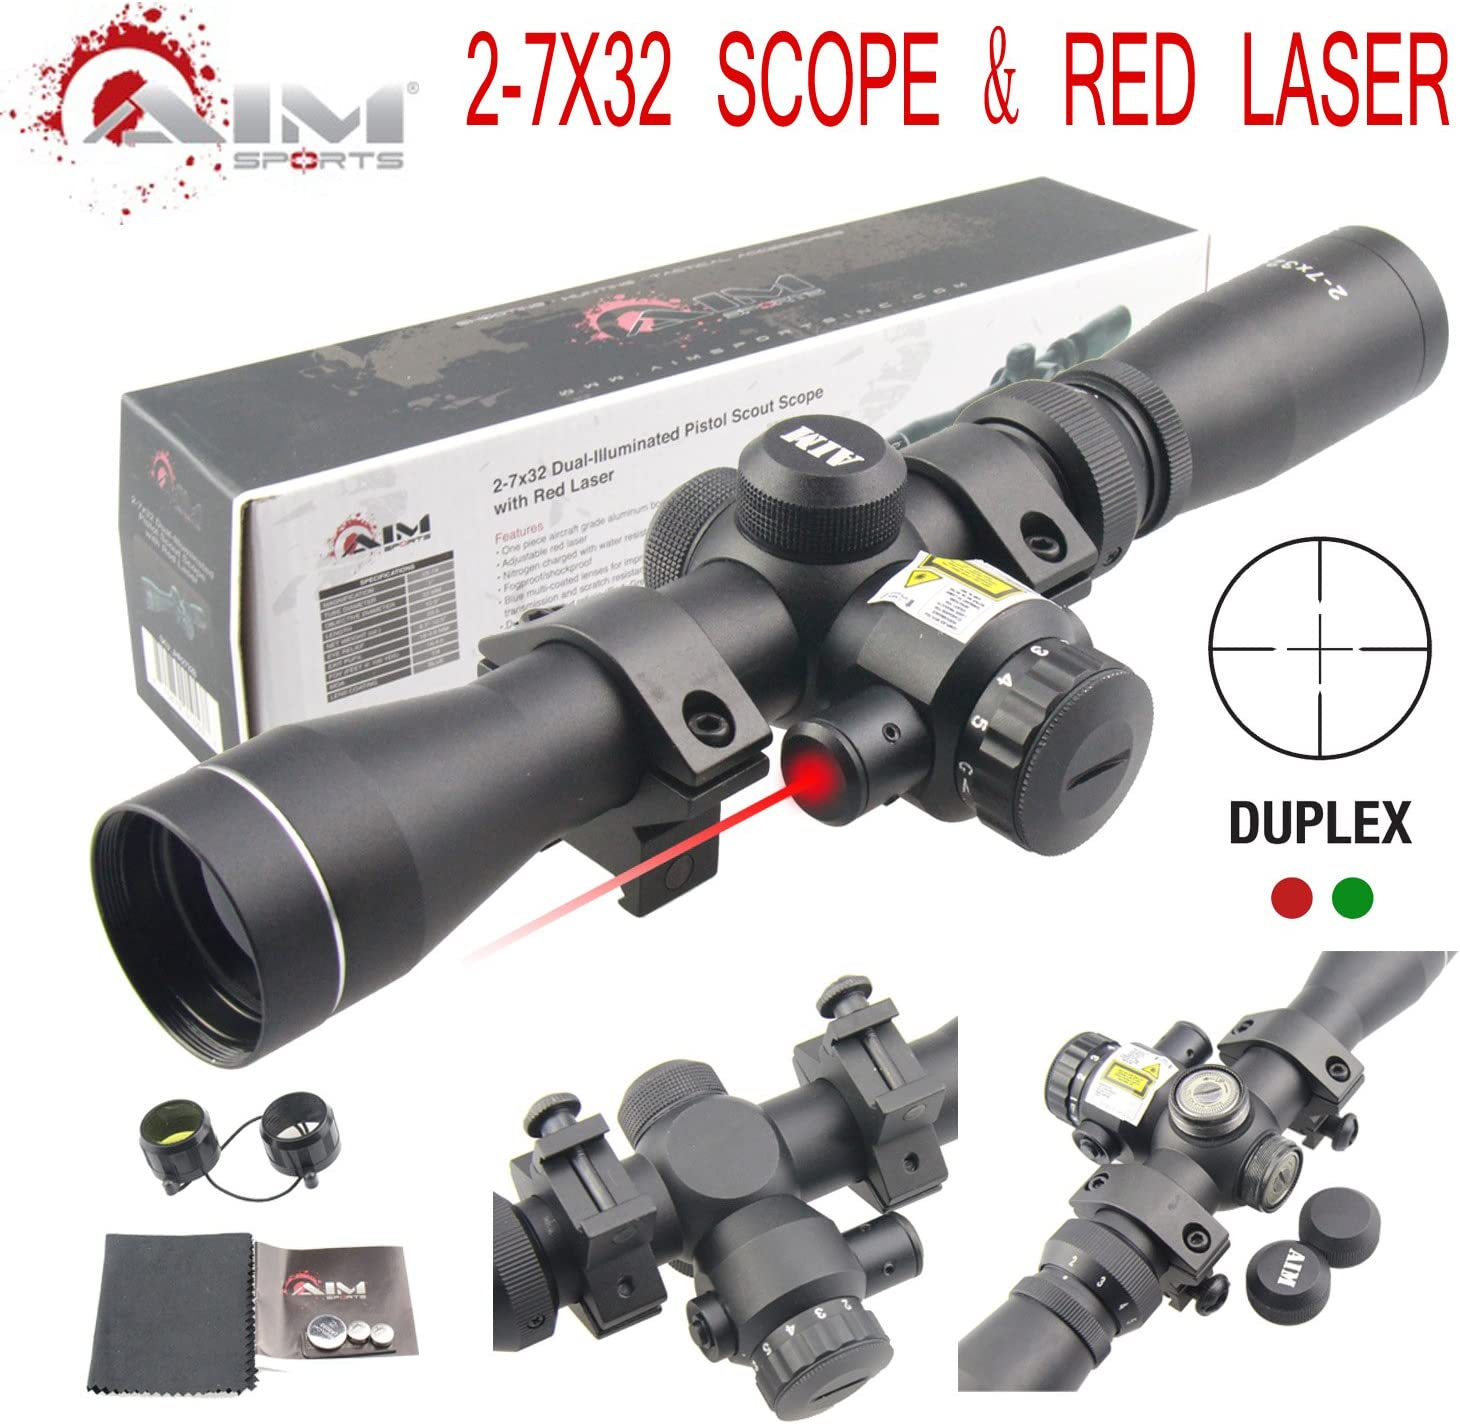 TACFUN AIM Sports 2-7X32MM Long Eye Relief Scout Scope with RED Laser Duplex Reticle